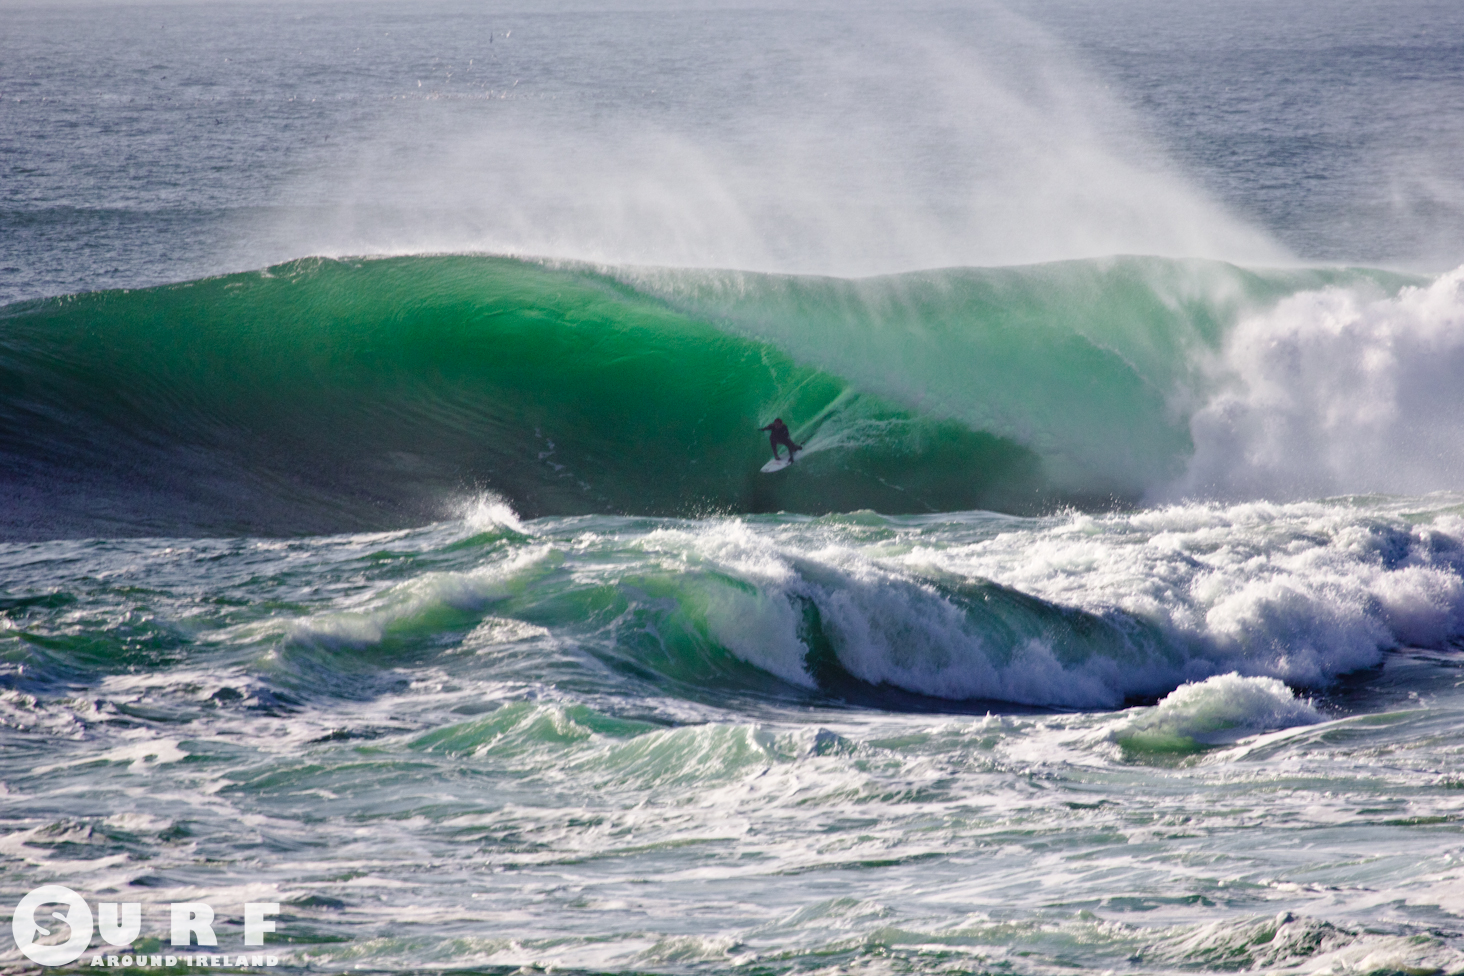 Surfing Cliffs of Moher